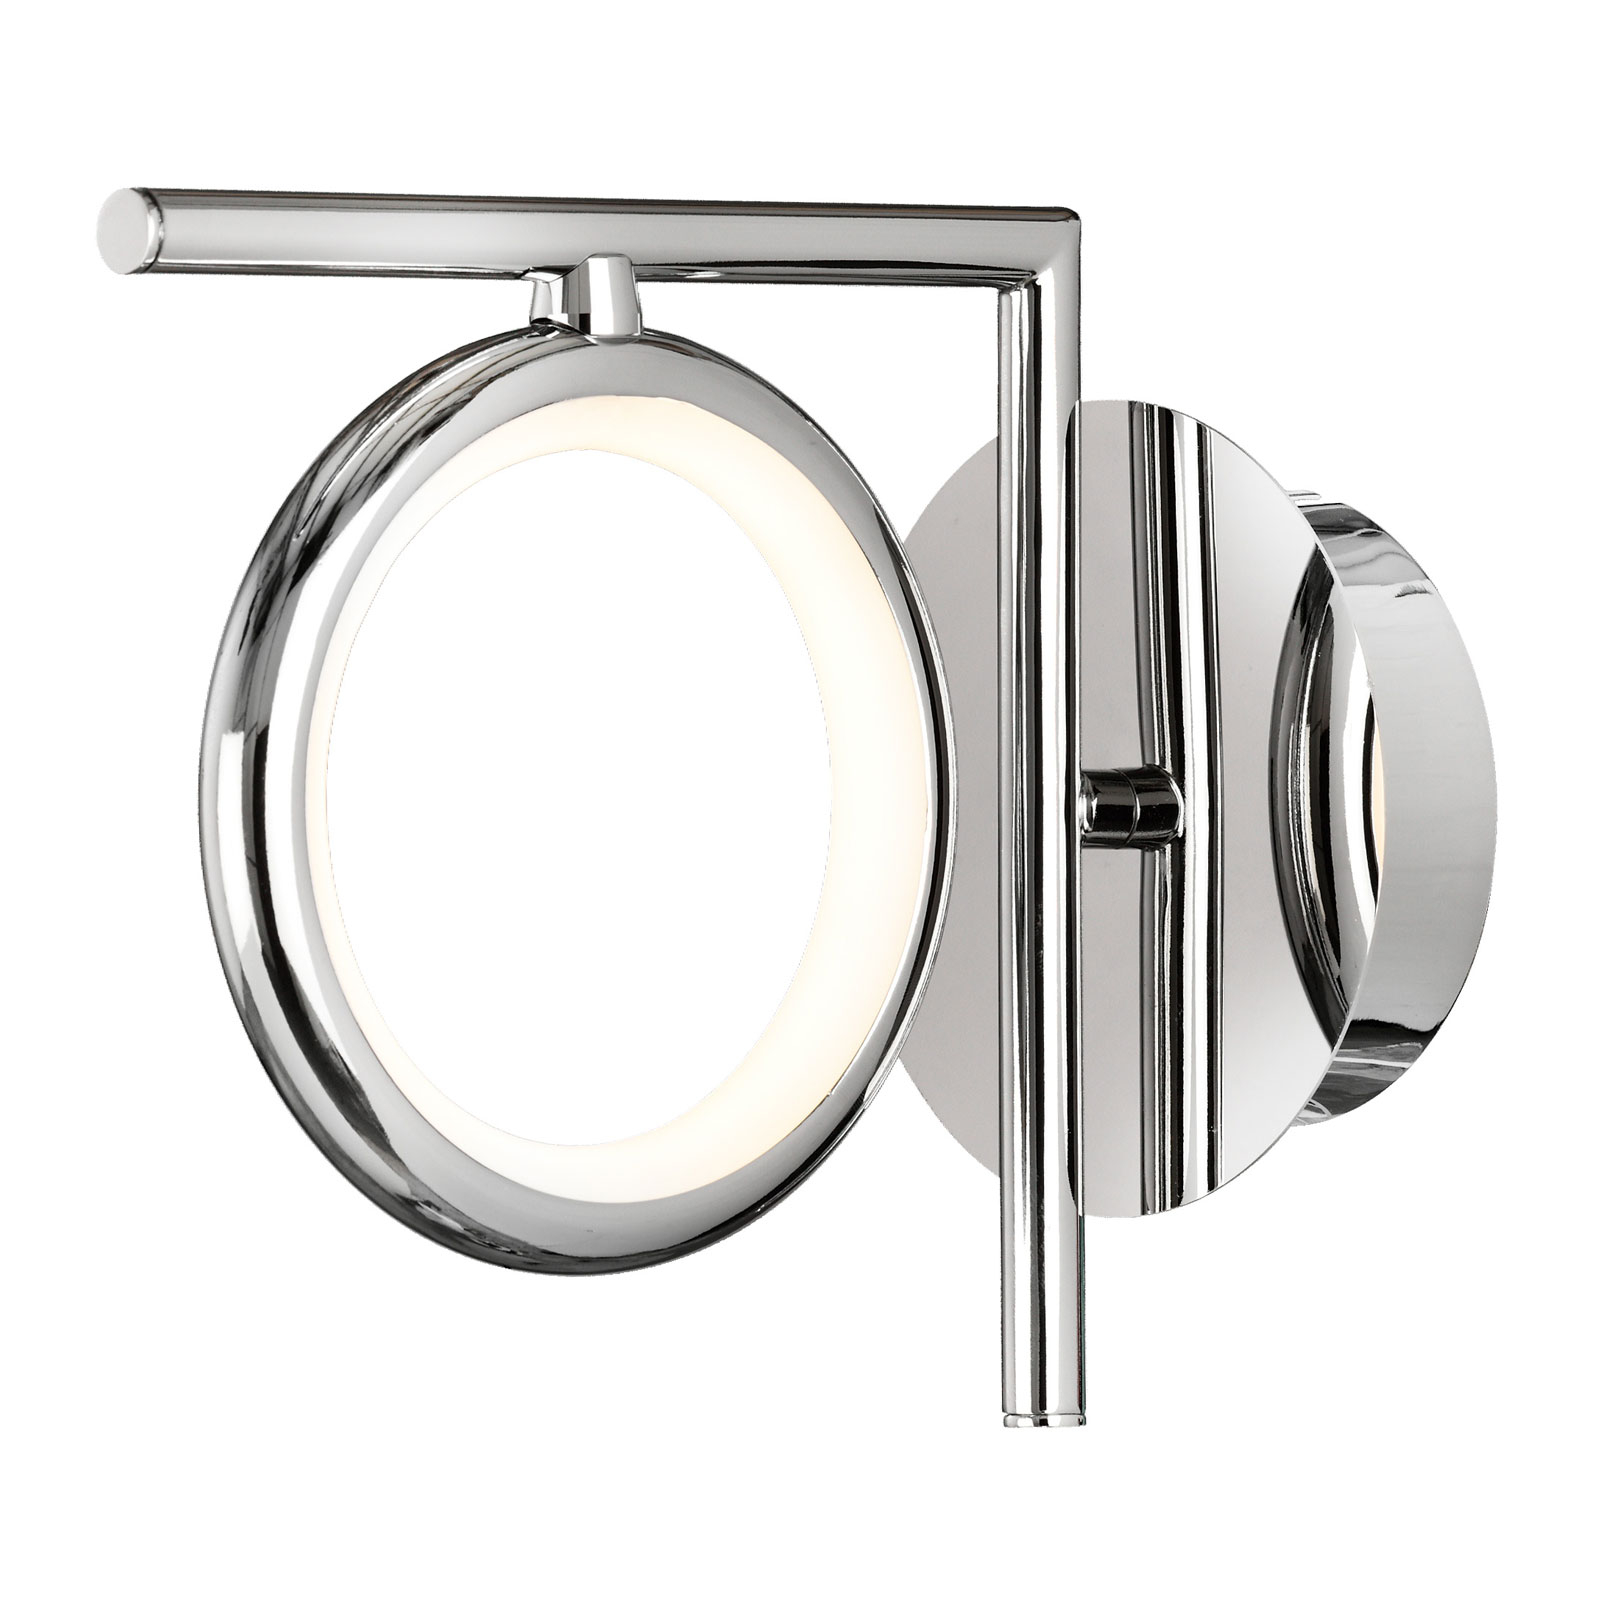 Applique LED Olimpia, cromo